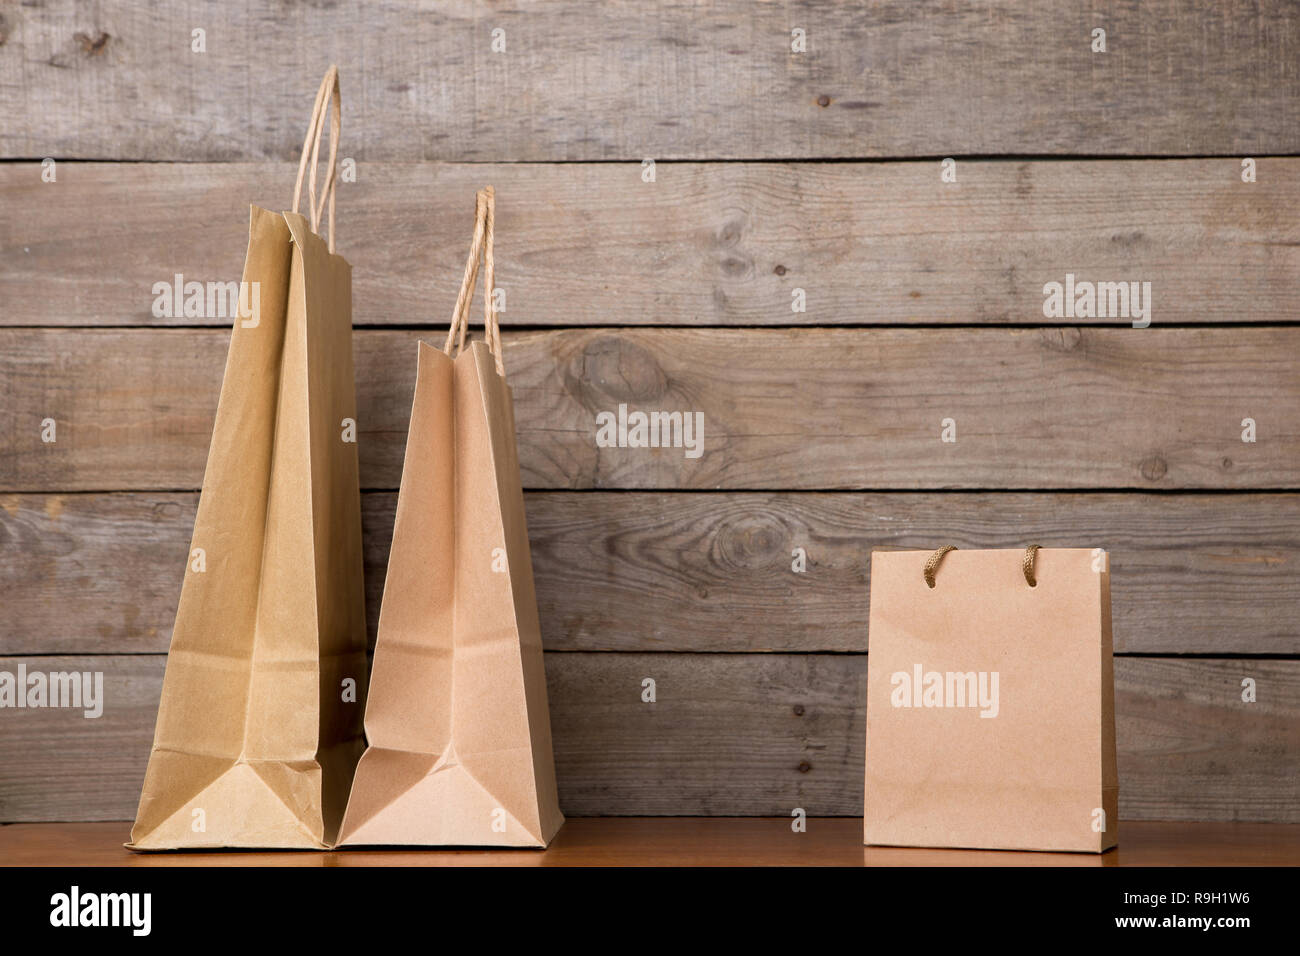 Cardboard shopping bags on wooden background - Stock Image